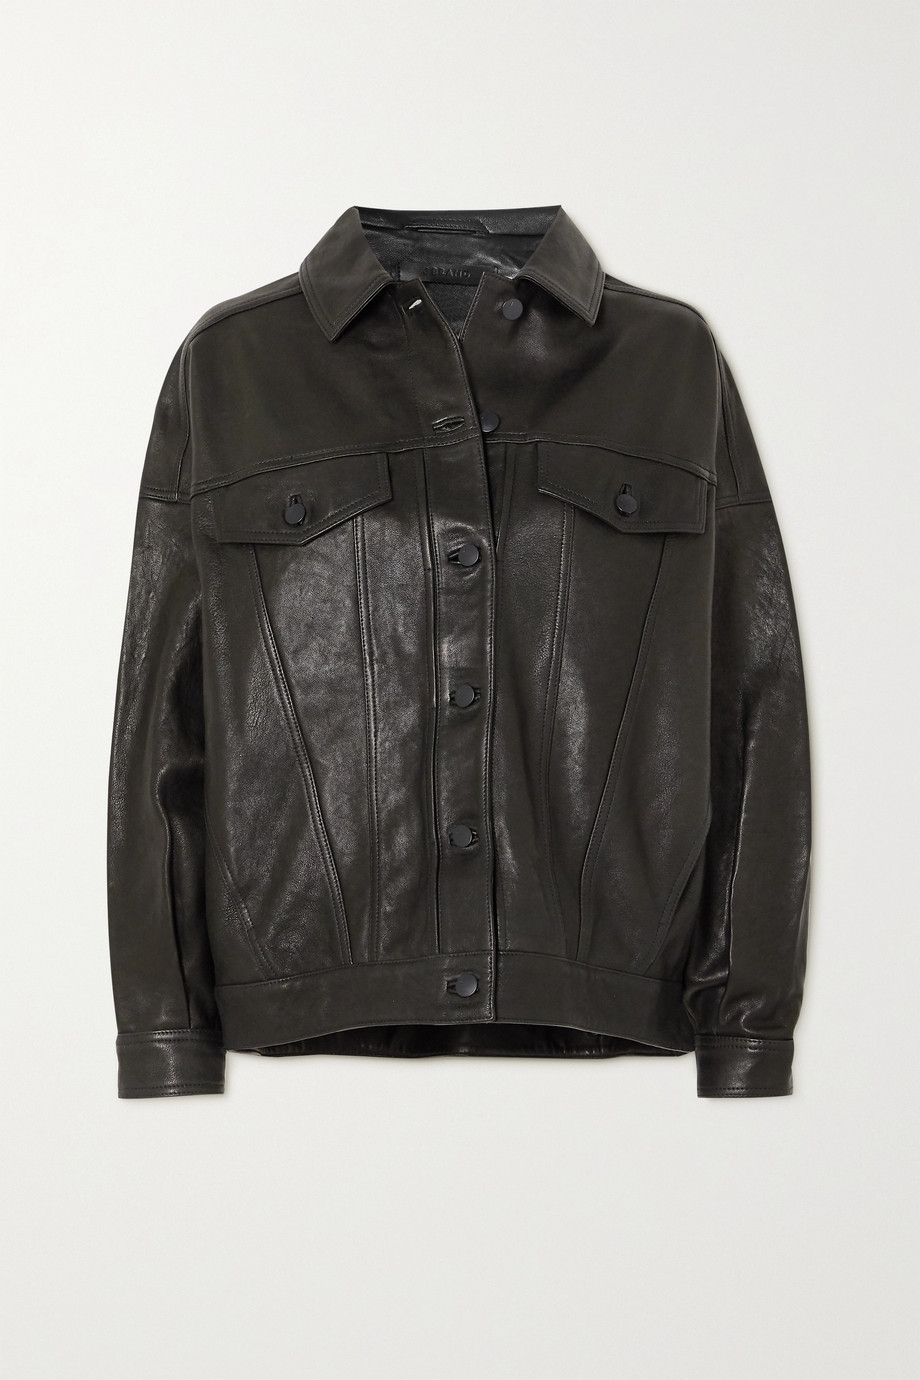 J Brand Drew oversized leather jacket